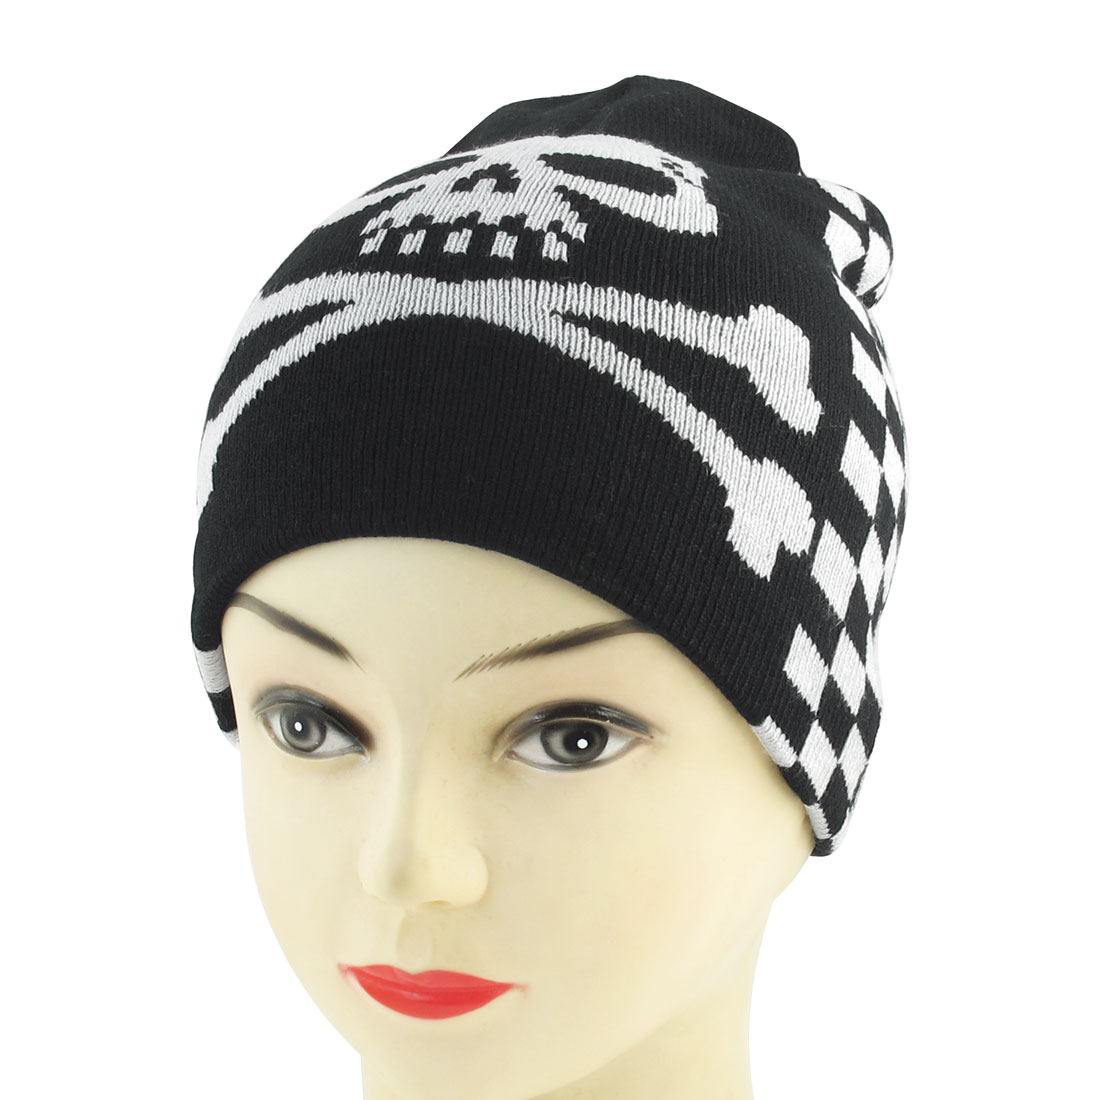 Black White Skull Head Pattern Stretchy Hand Kniting Warm Beanie Hat for Unisex